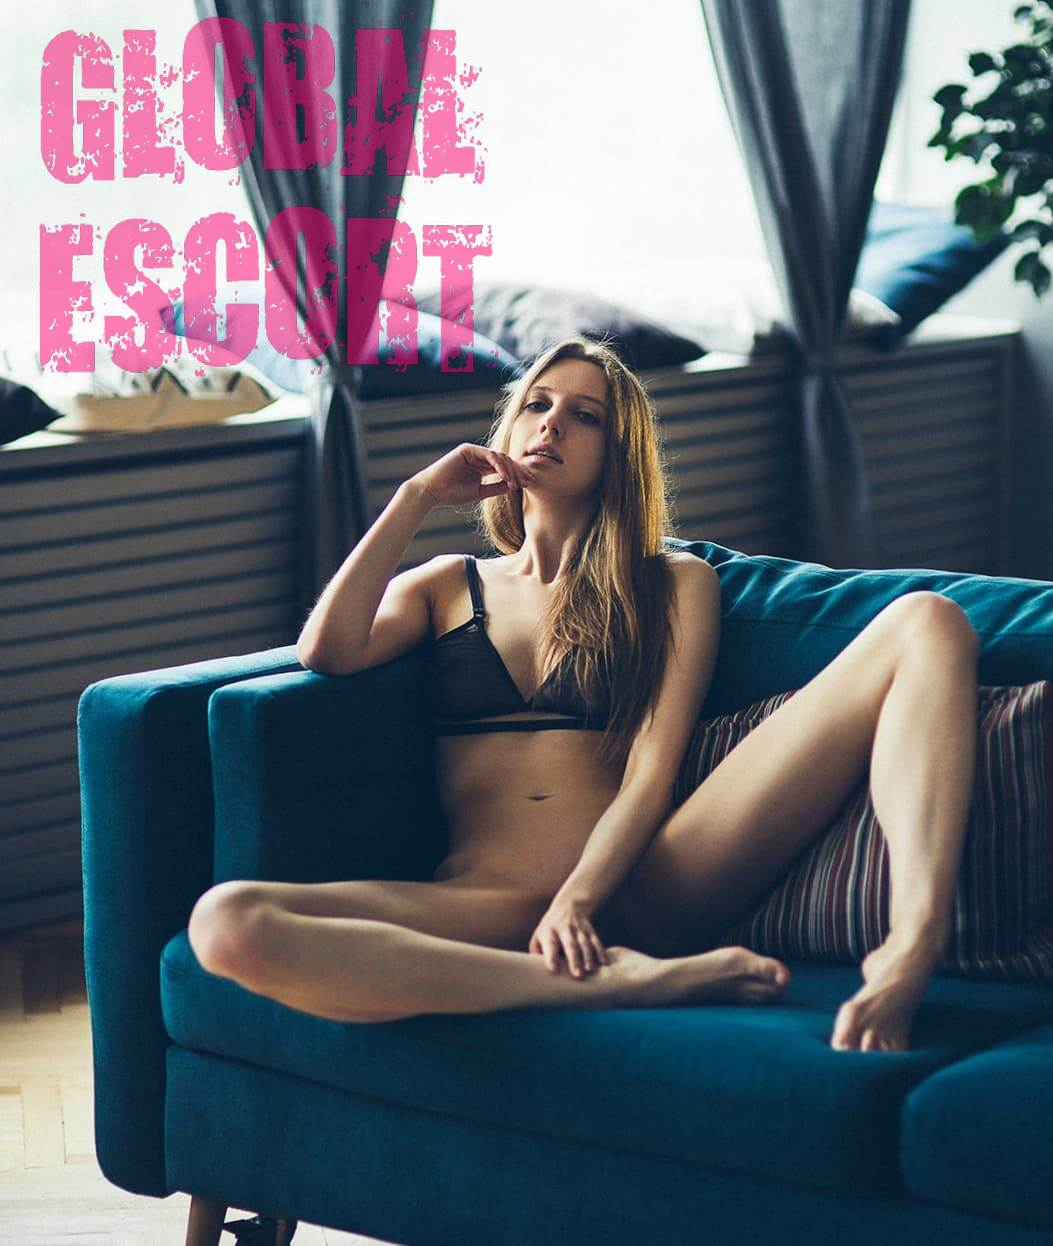 naked escort model sits on a blue sofa in the room and spreads her legs